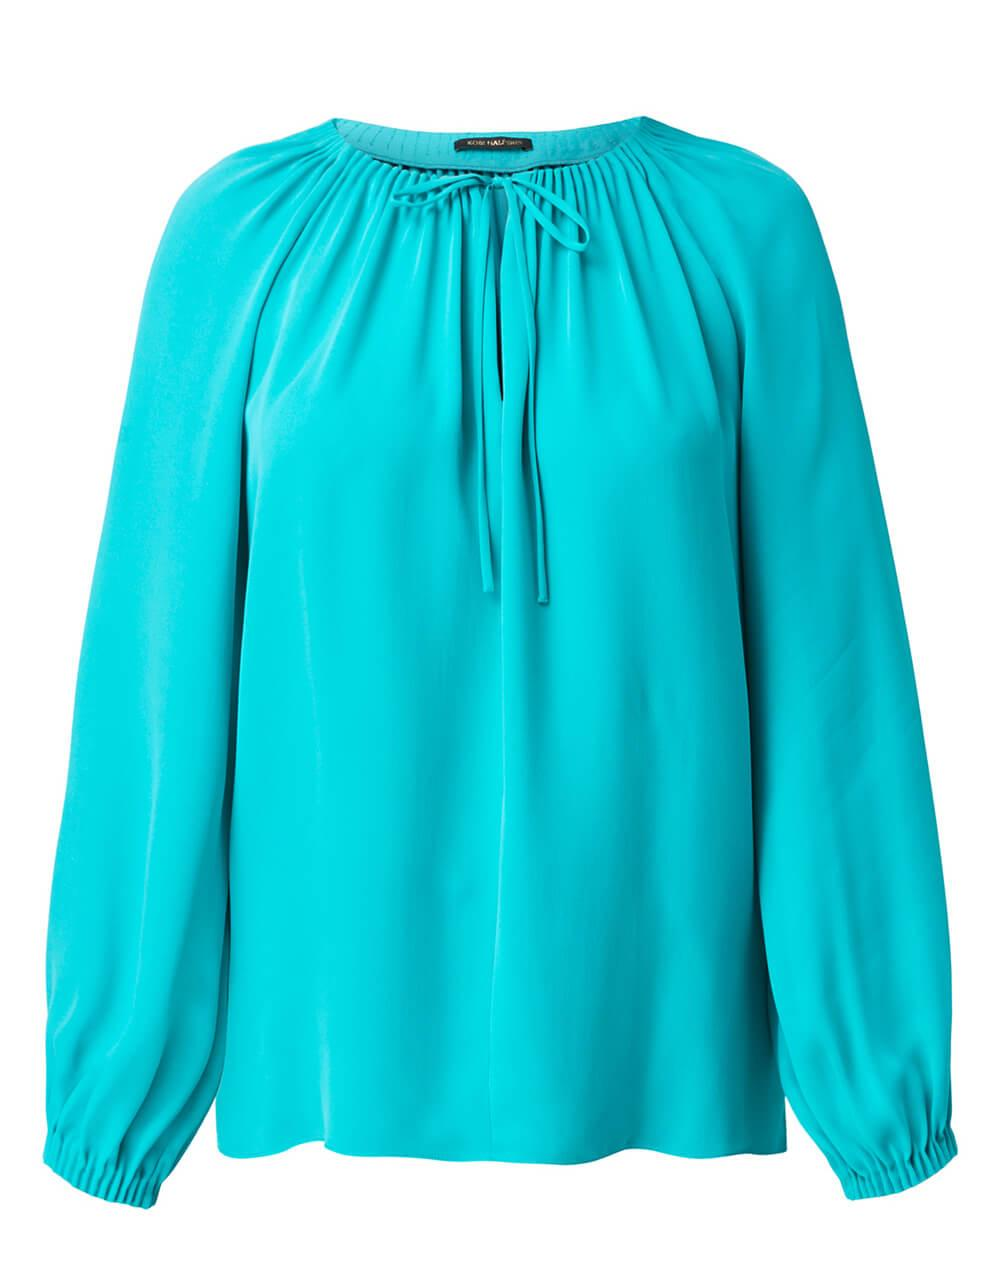 Payge Blouse